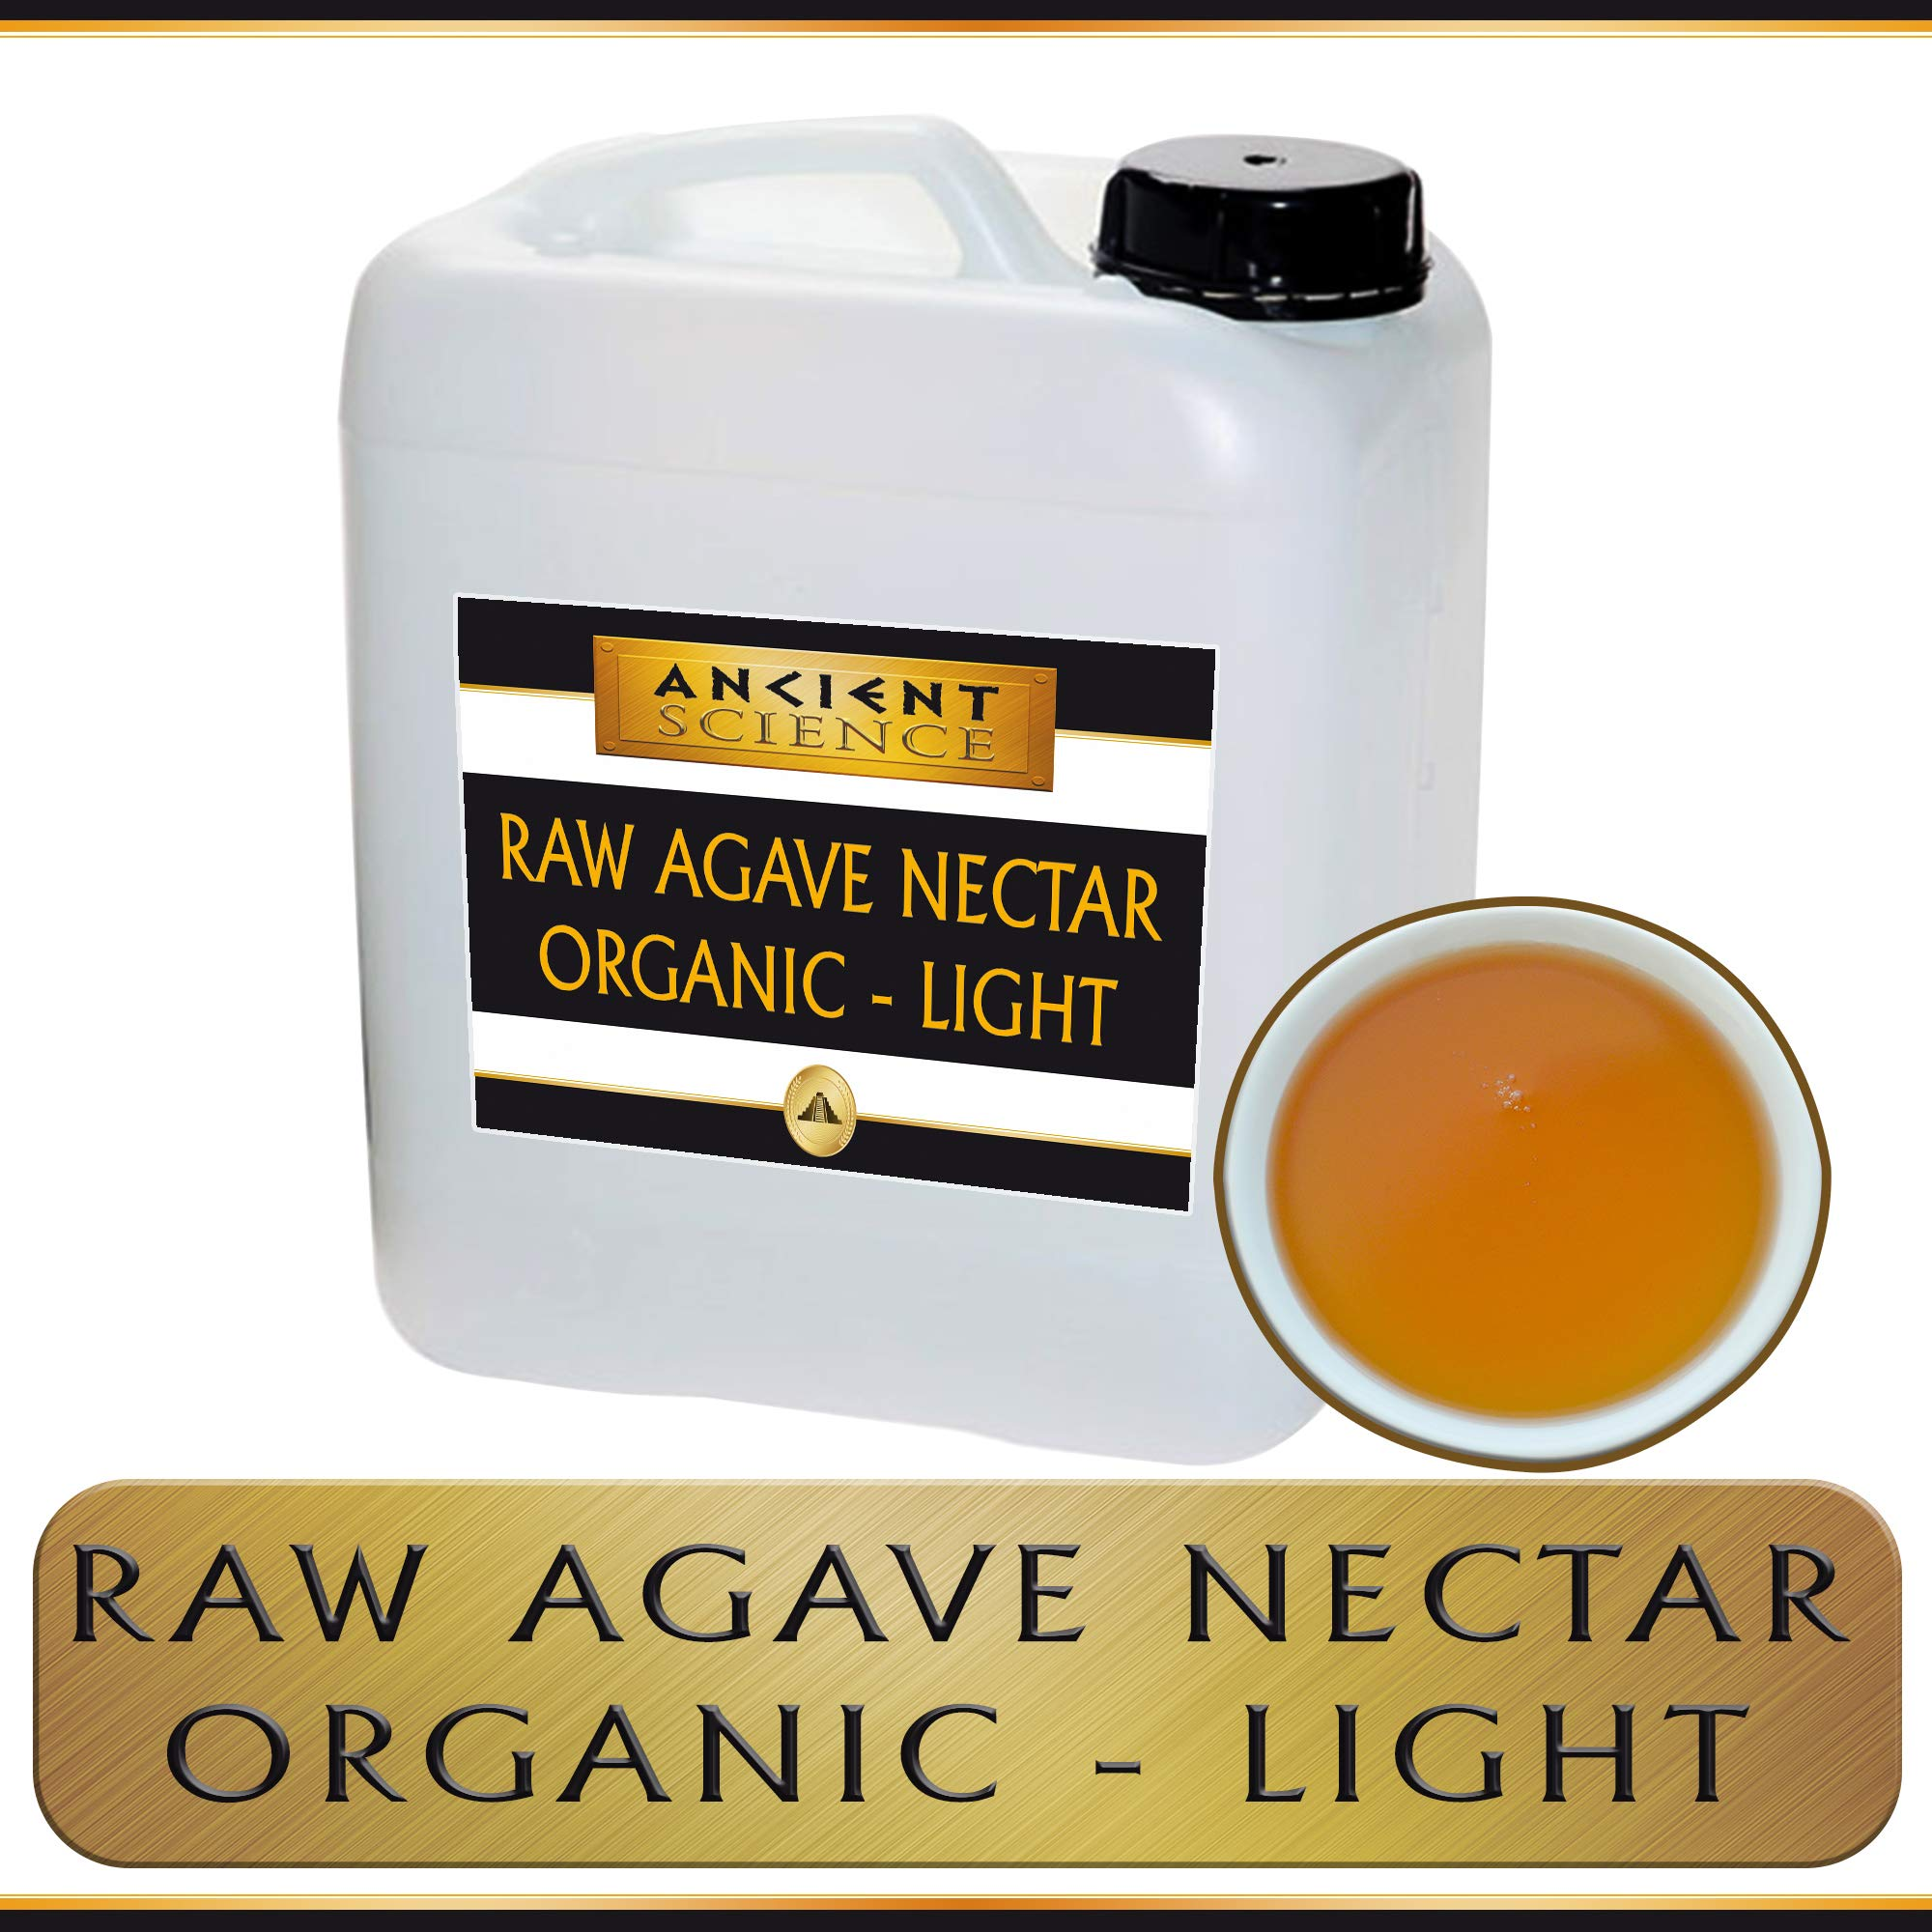 Bulk Raw Agave Nectar Organic - LIGHT - 5 Gallon Wholesale Supplier - Kosher